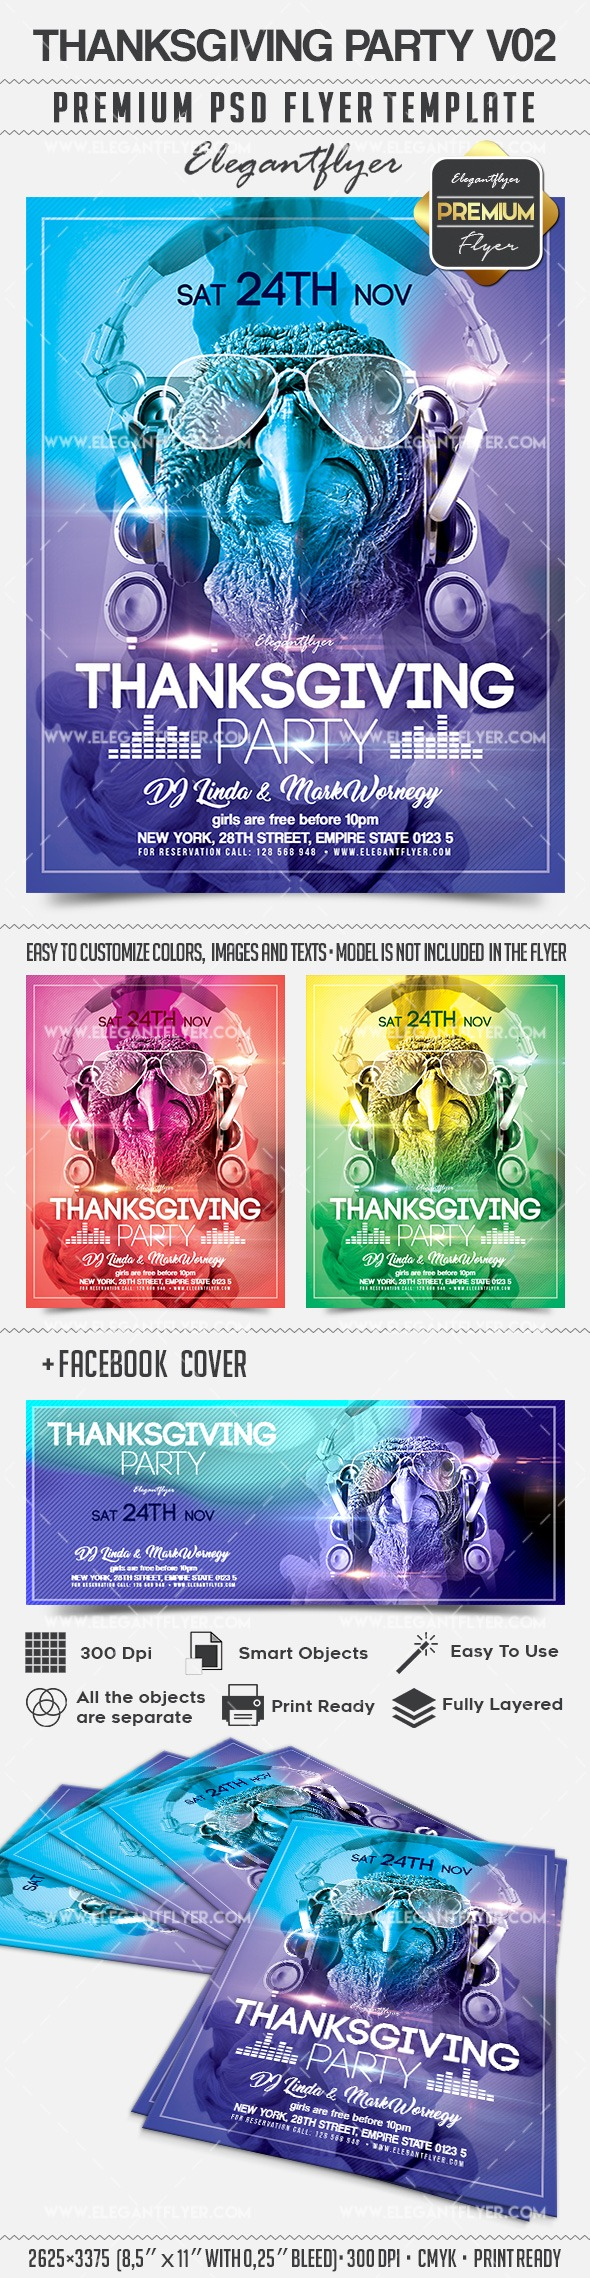 Thanksgiving Party V02 – Flyer PSD Template + Facebook Cover